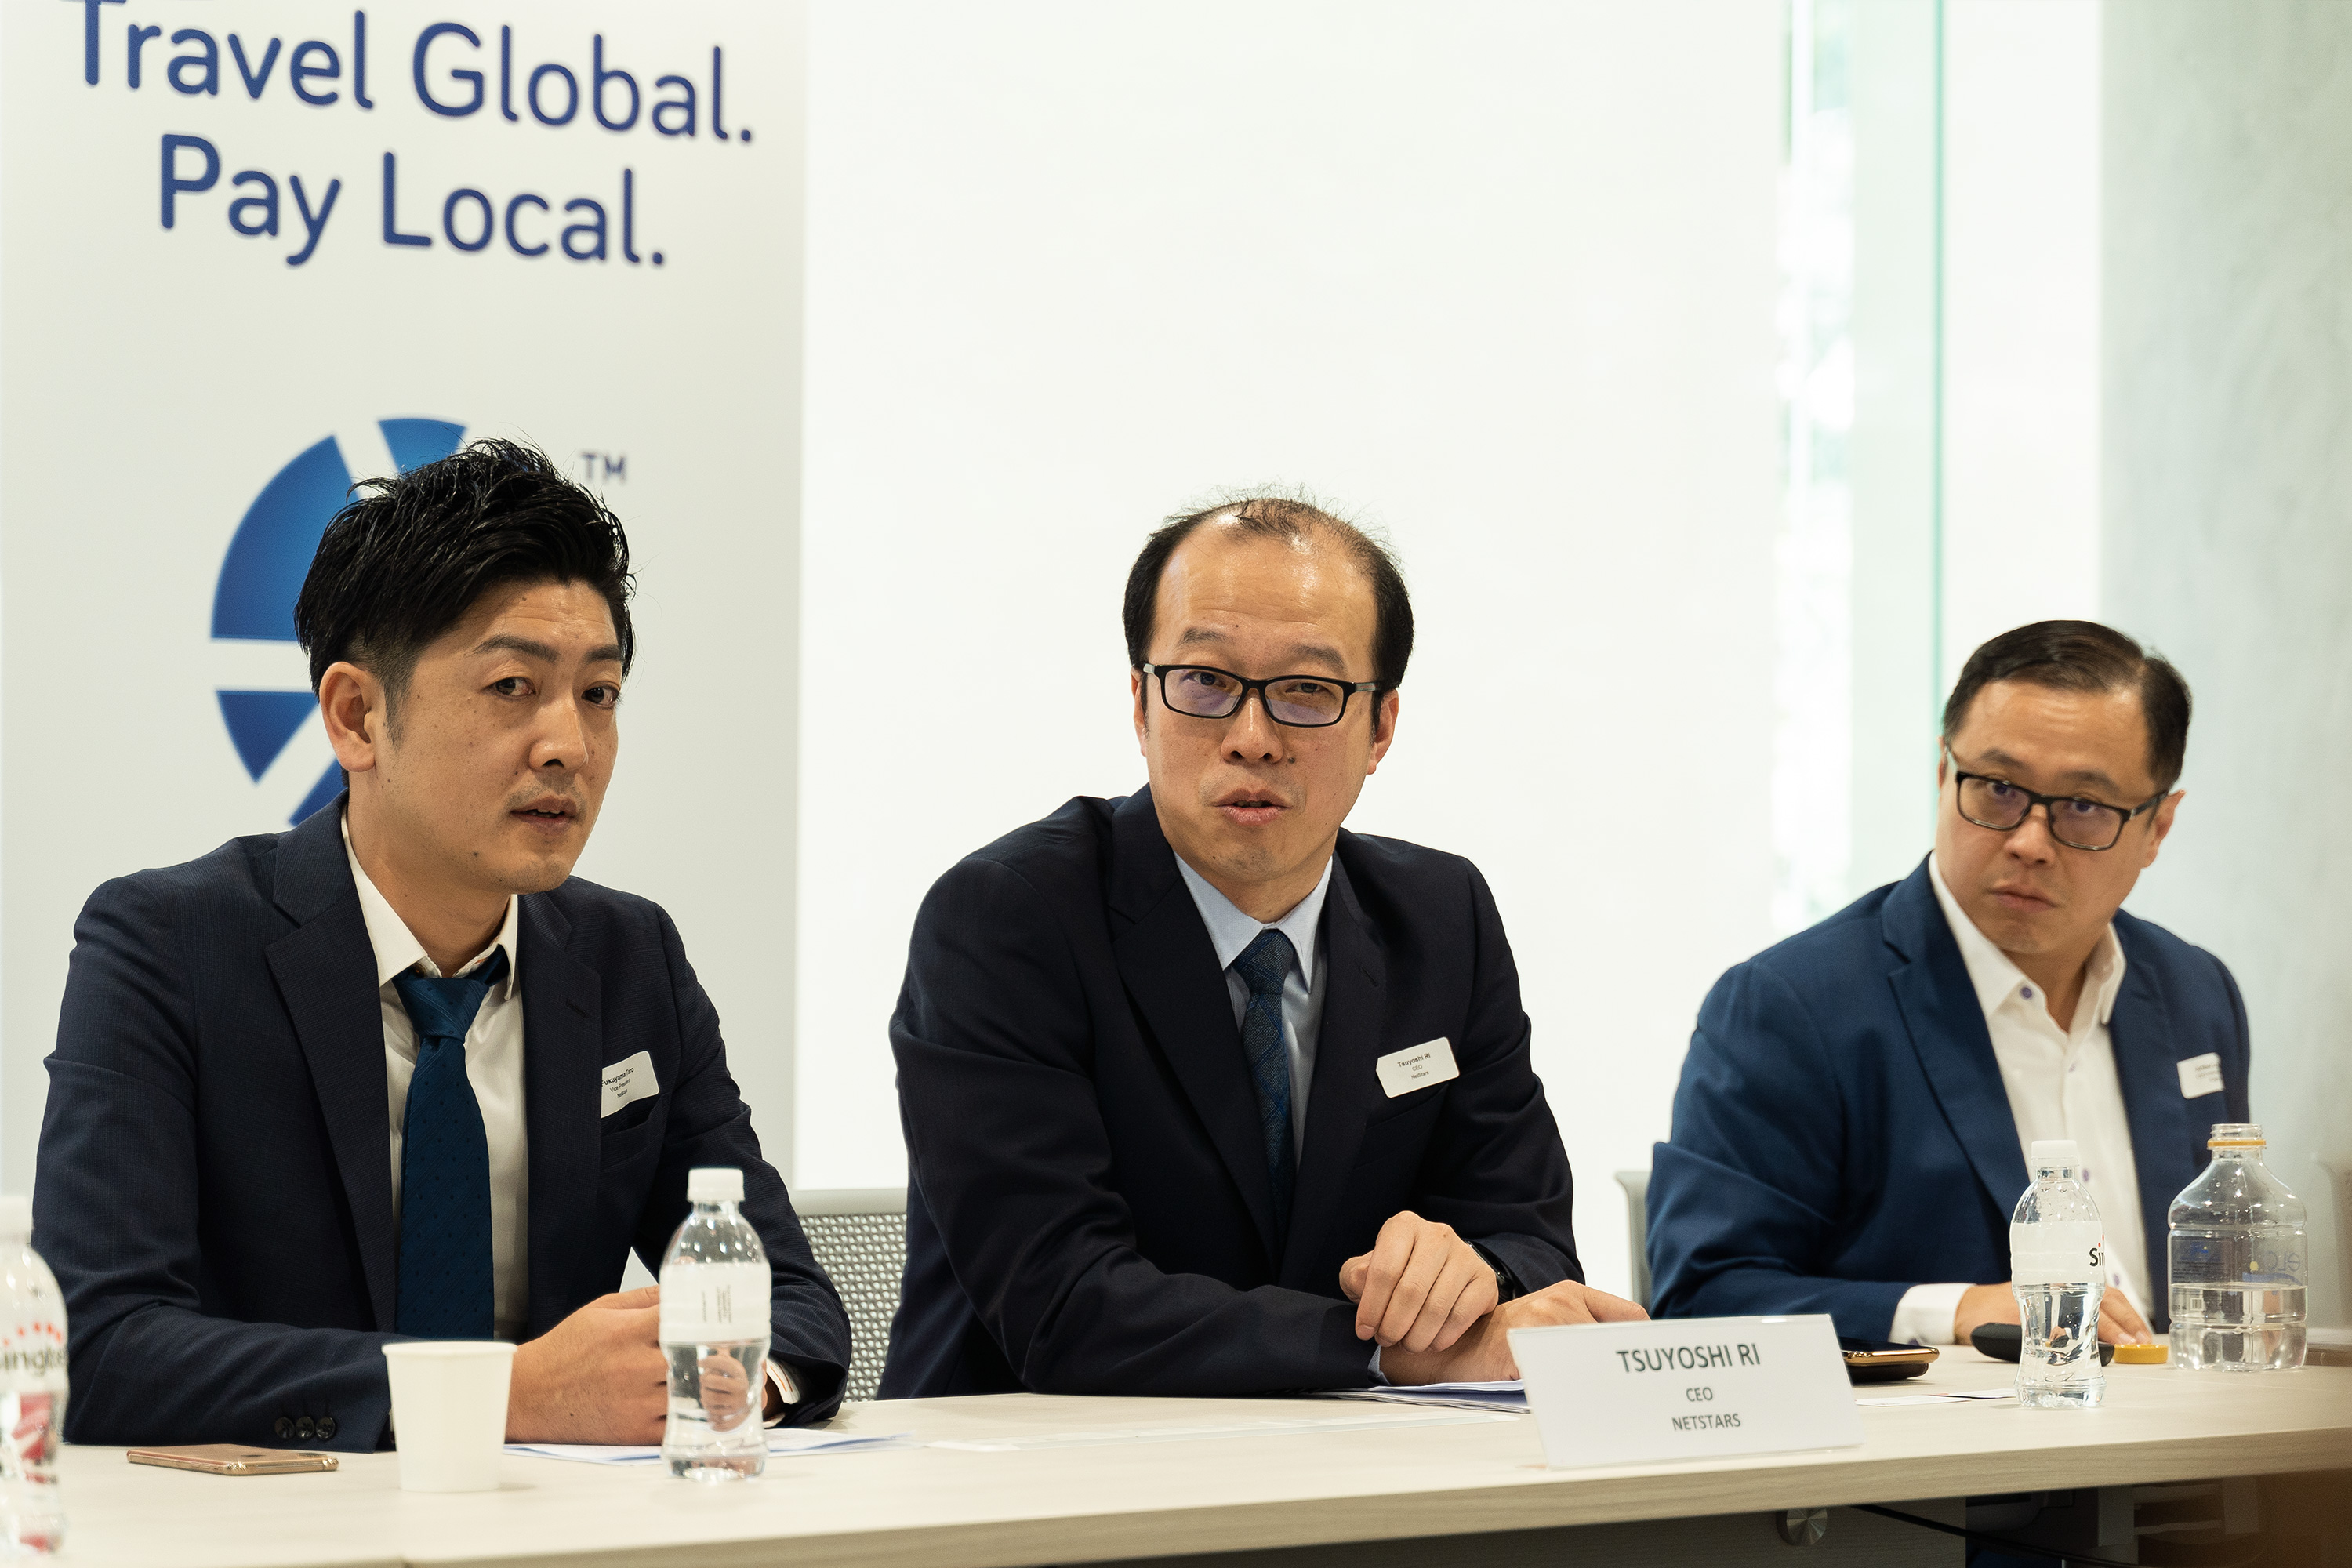 Mr Arthur Lang(right), CEO of Singtel's International Group, together with Mr Tsuyoshi Ri (middle), CEO, Netstars.